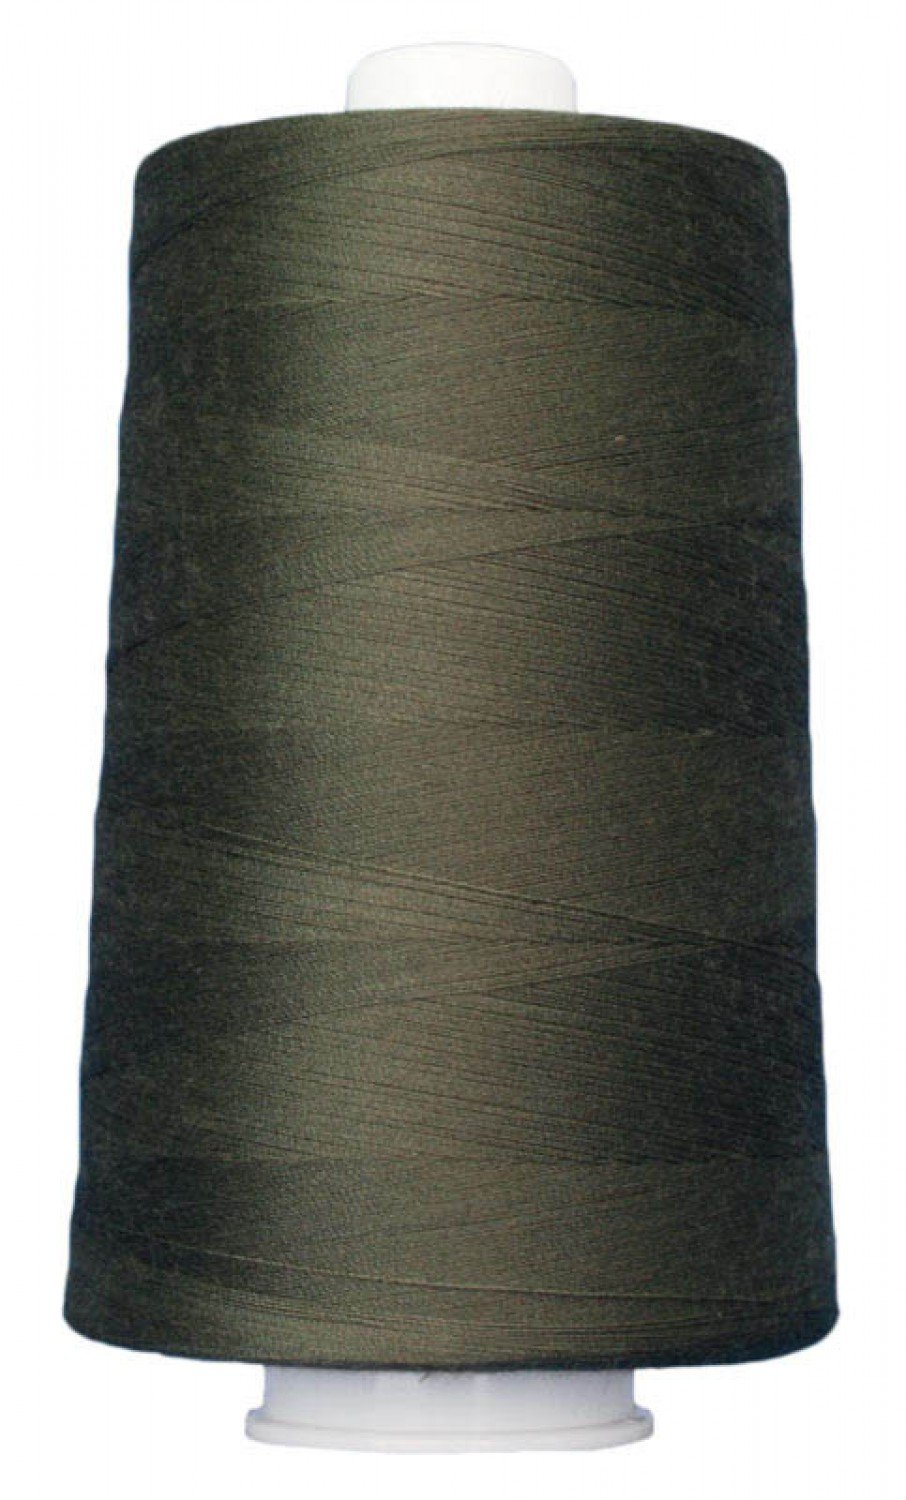 OMNI Polyester Thread 40 wt 6000 yds 3067 Willow Leaf/Pine Shadow by Superior